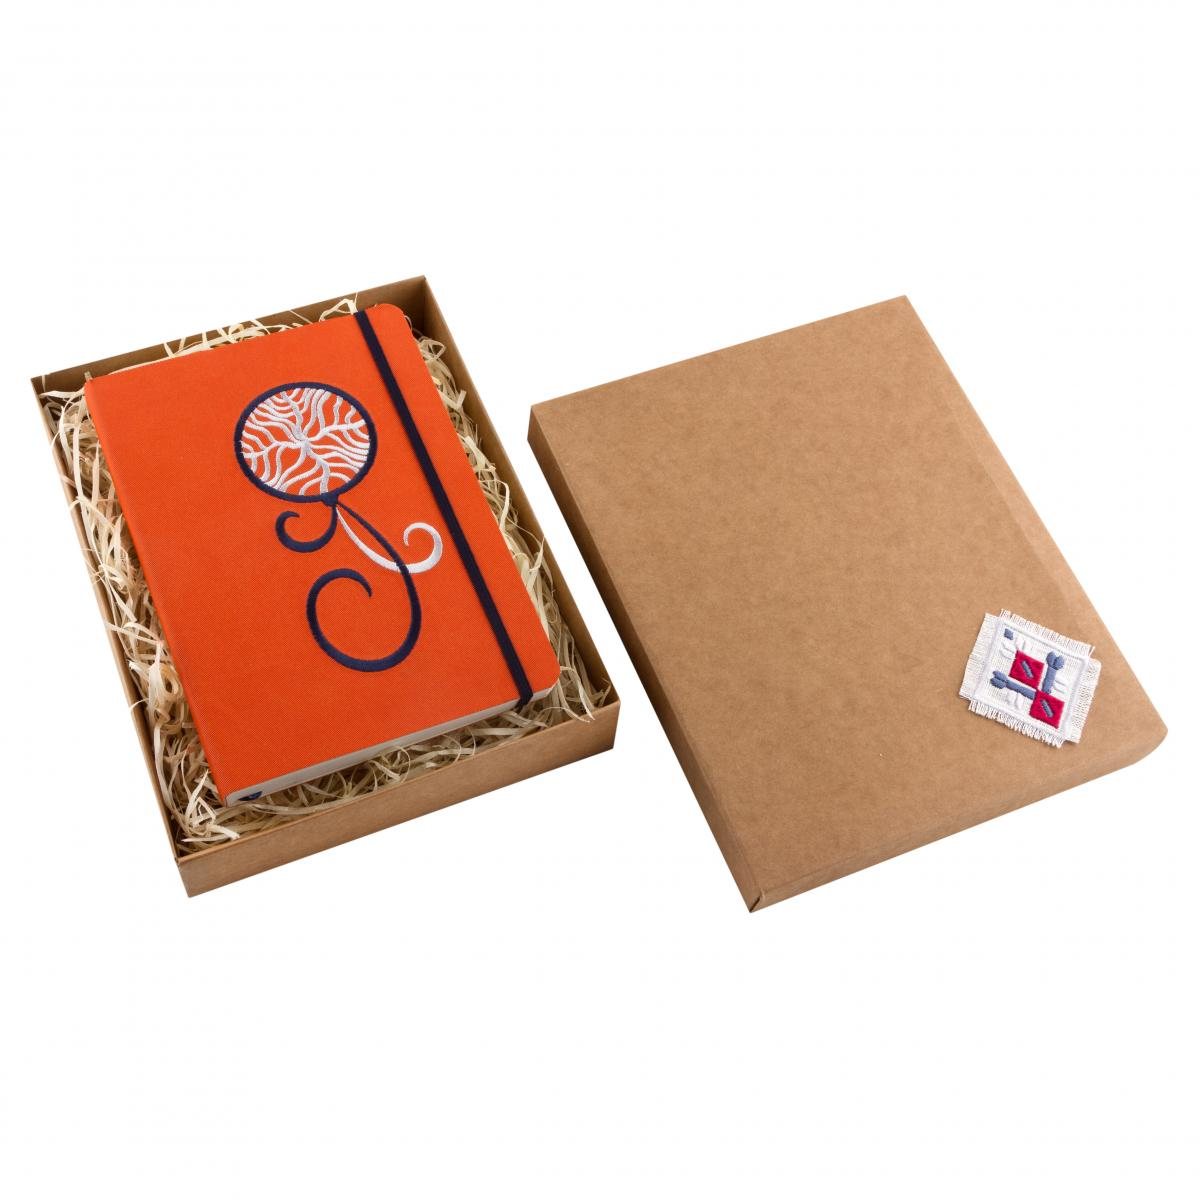 Eco-leather notebook with embroidered Dream catcher, orange. Photo №3. | Narodnyi dim Ukraine